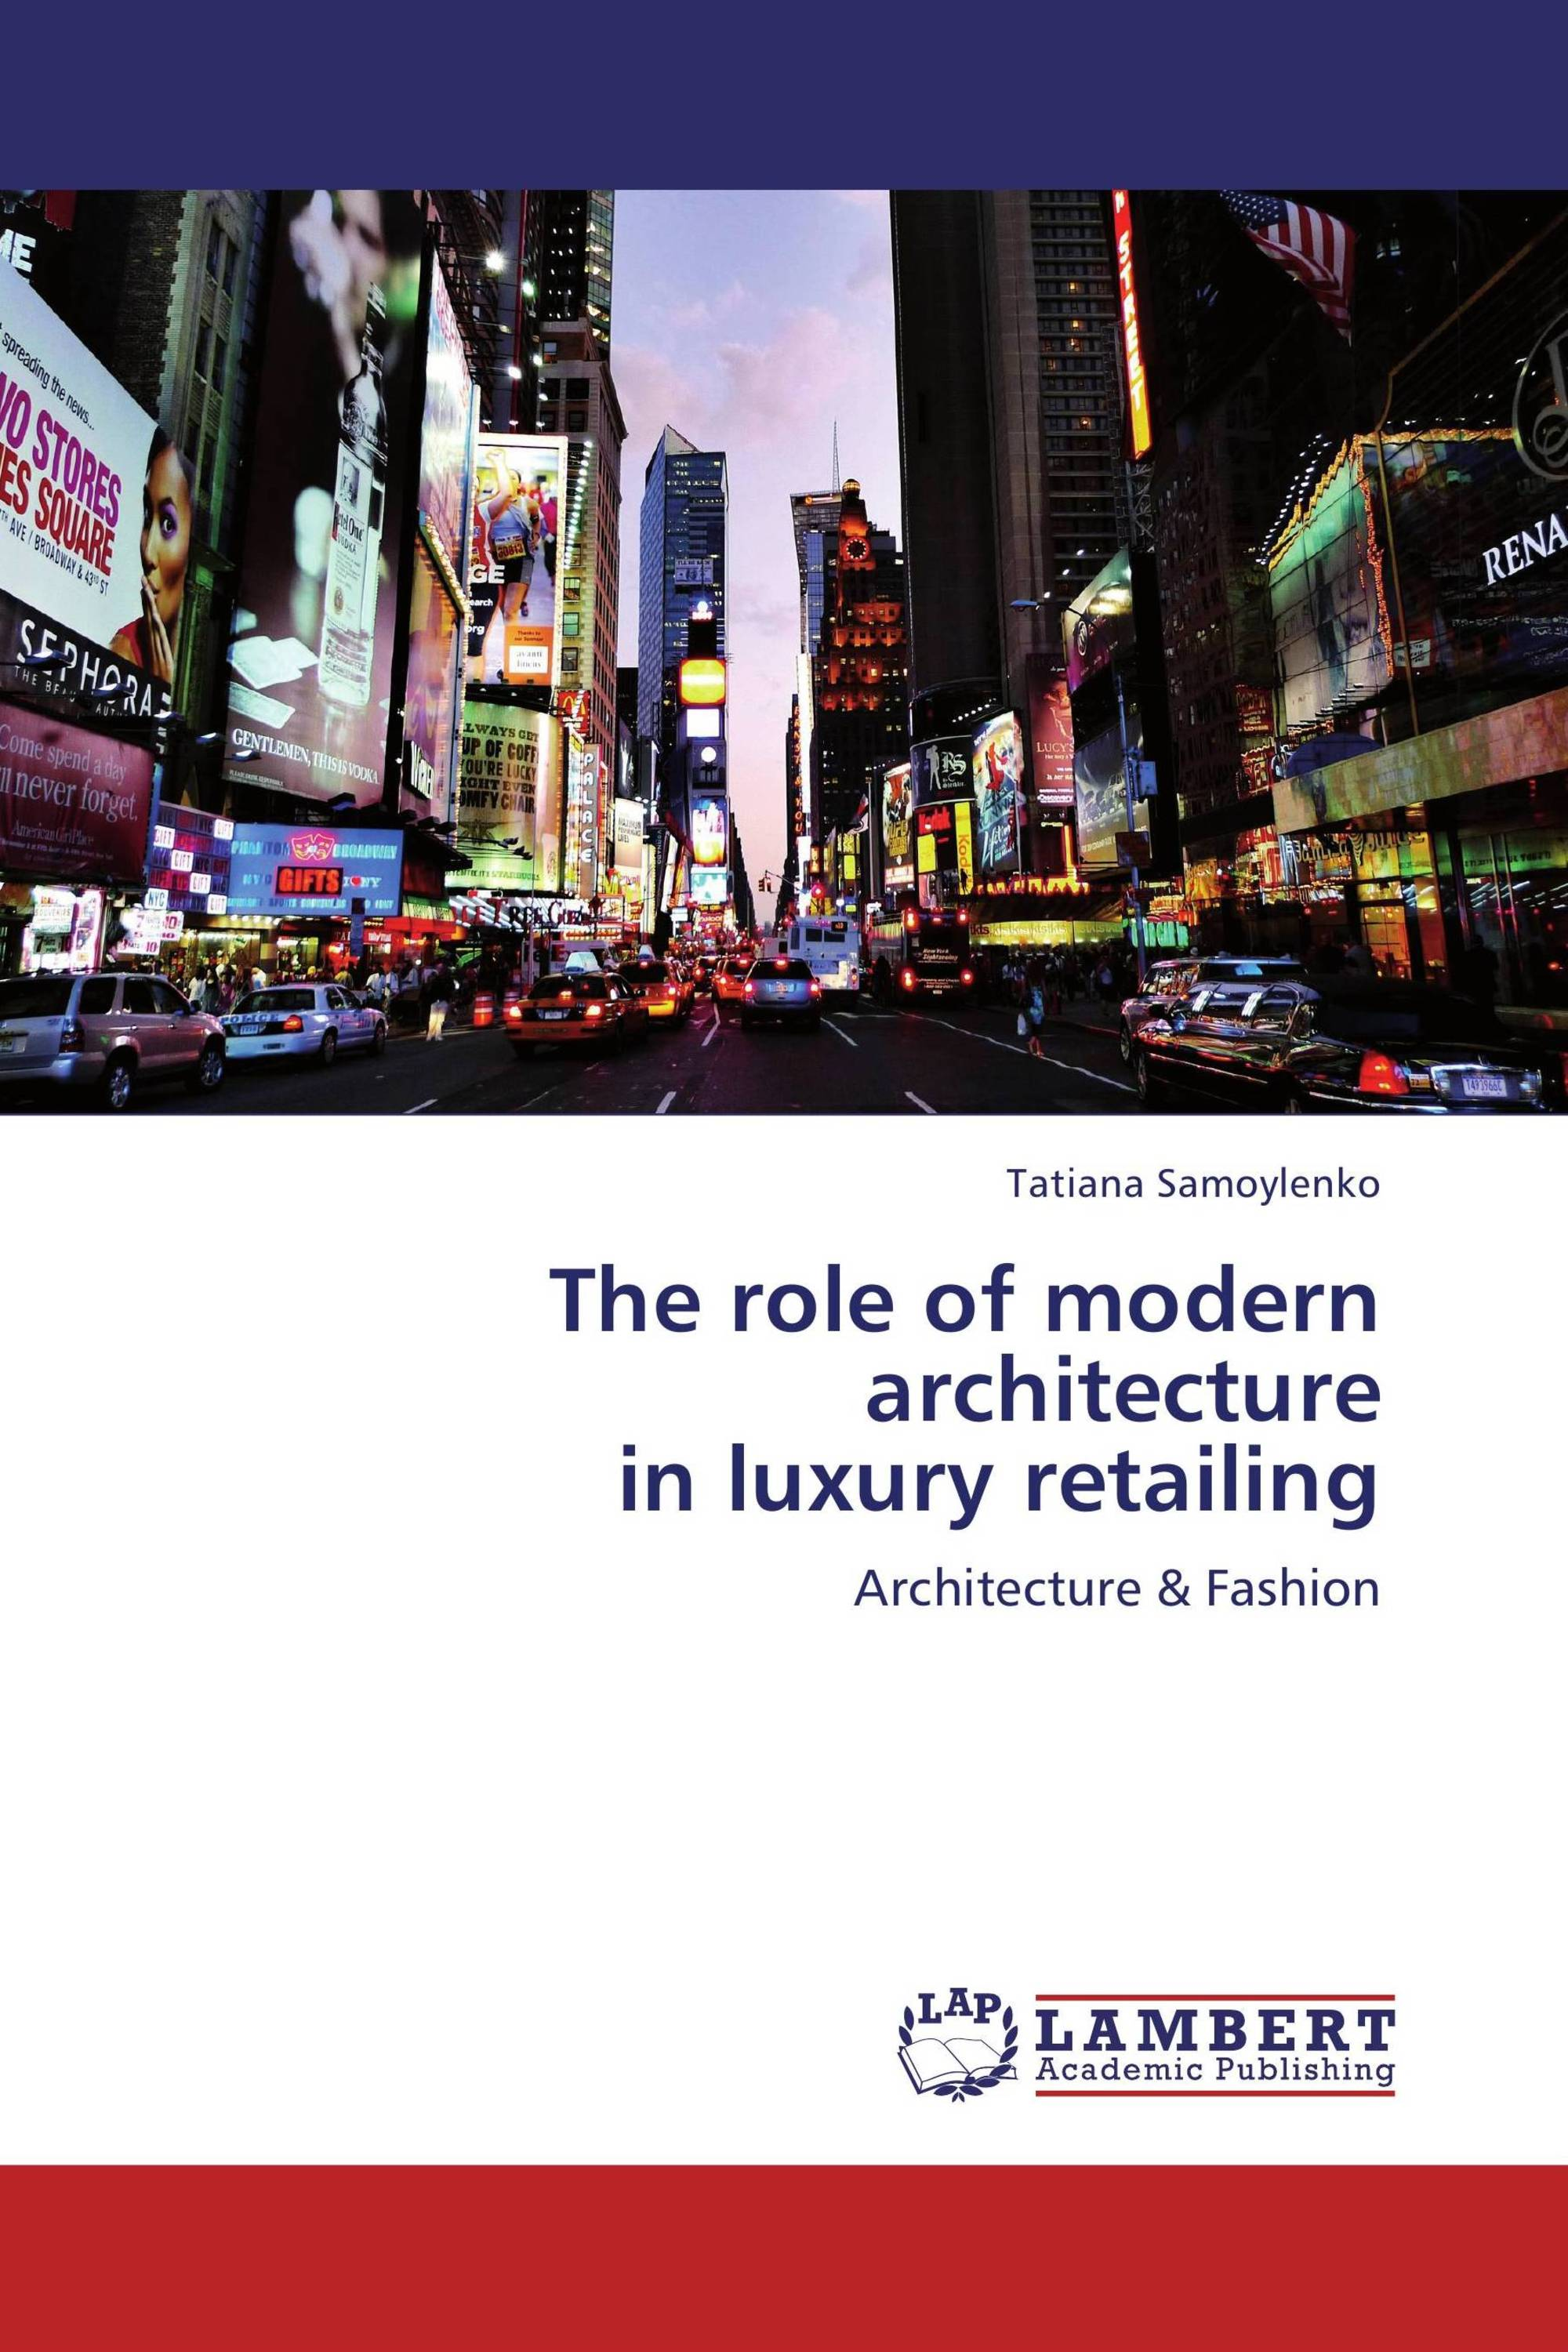 The role of modern architecture  in luxury retailing